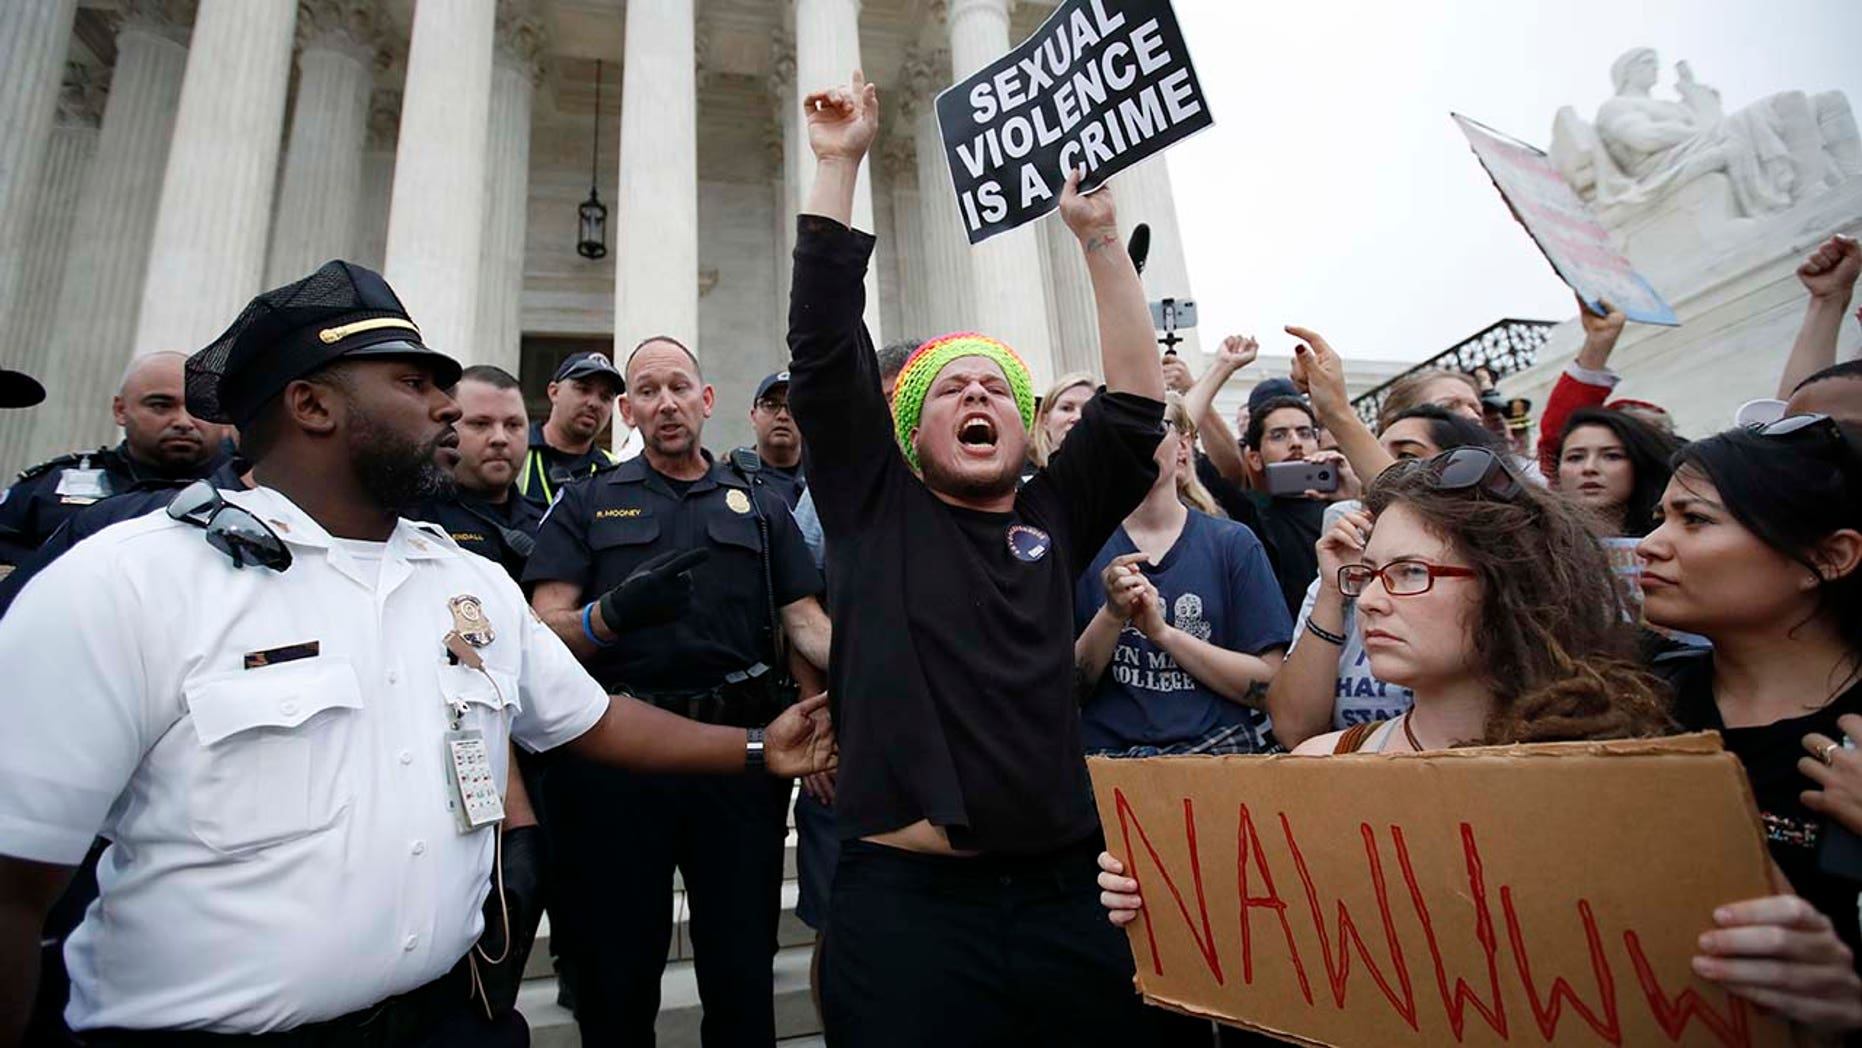 Police move activists as they protest on the steps of the Supreme Court after the confirmation vote of Supreme Court nominee Brett Kavanaugh, on Capitol Hill, Saturday, Oct. 6, 2018 in Washington. (AP Photo/Alex Brandon)